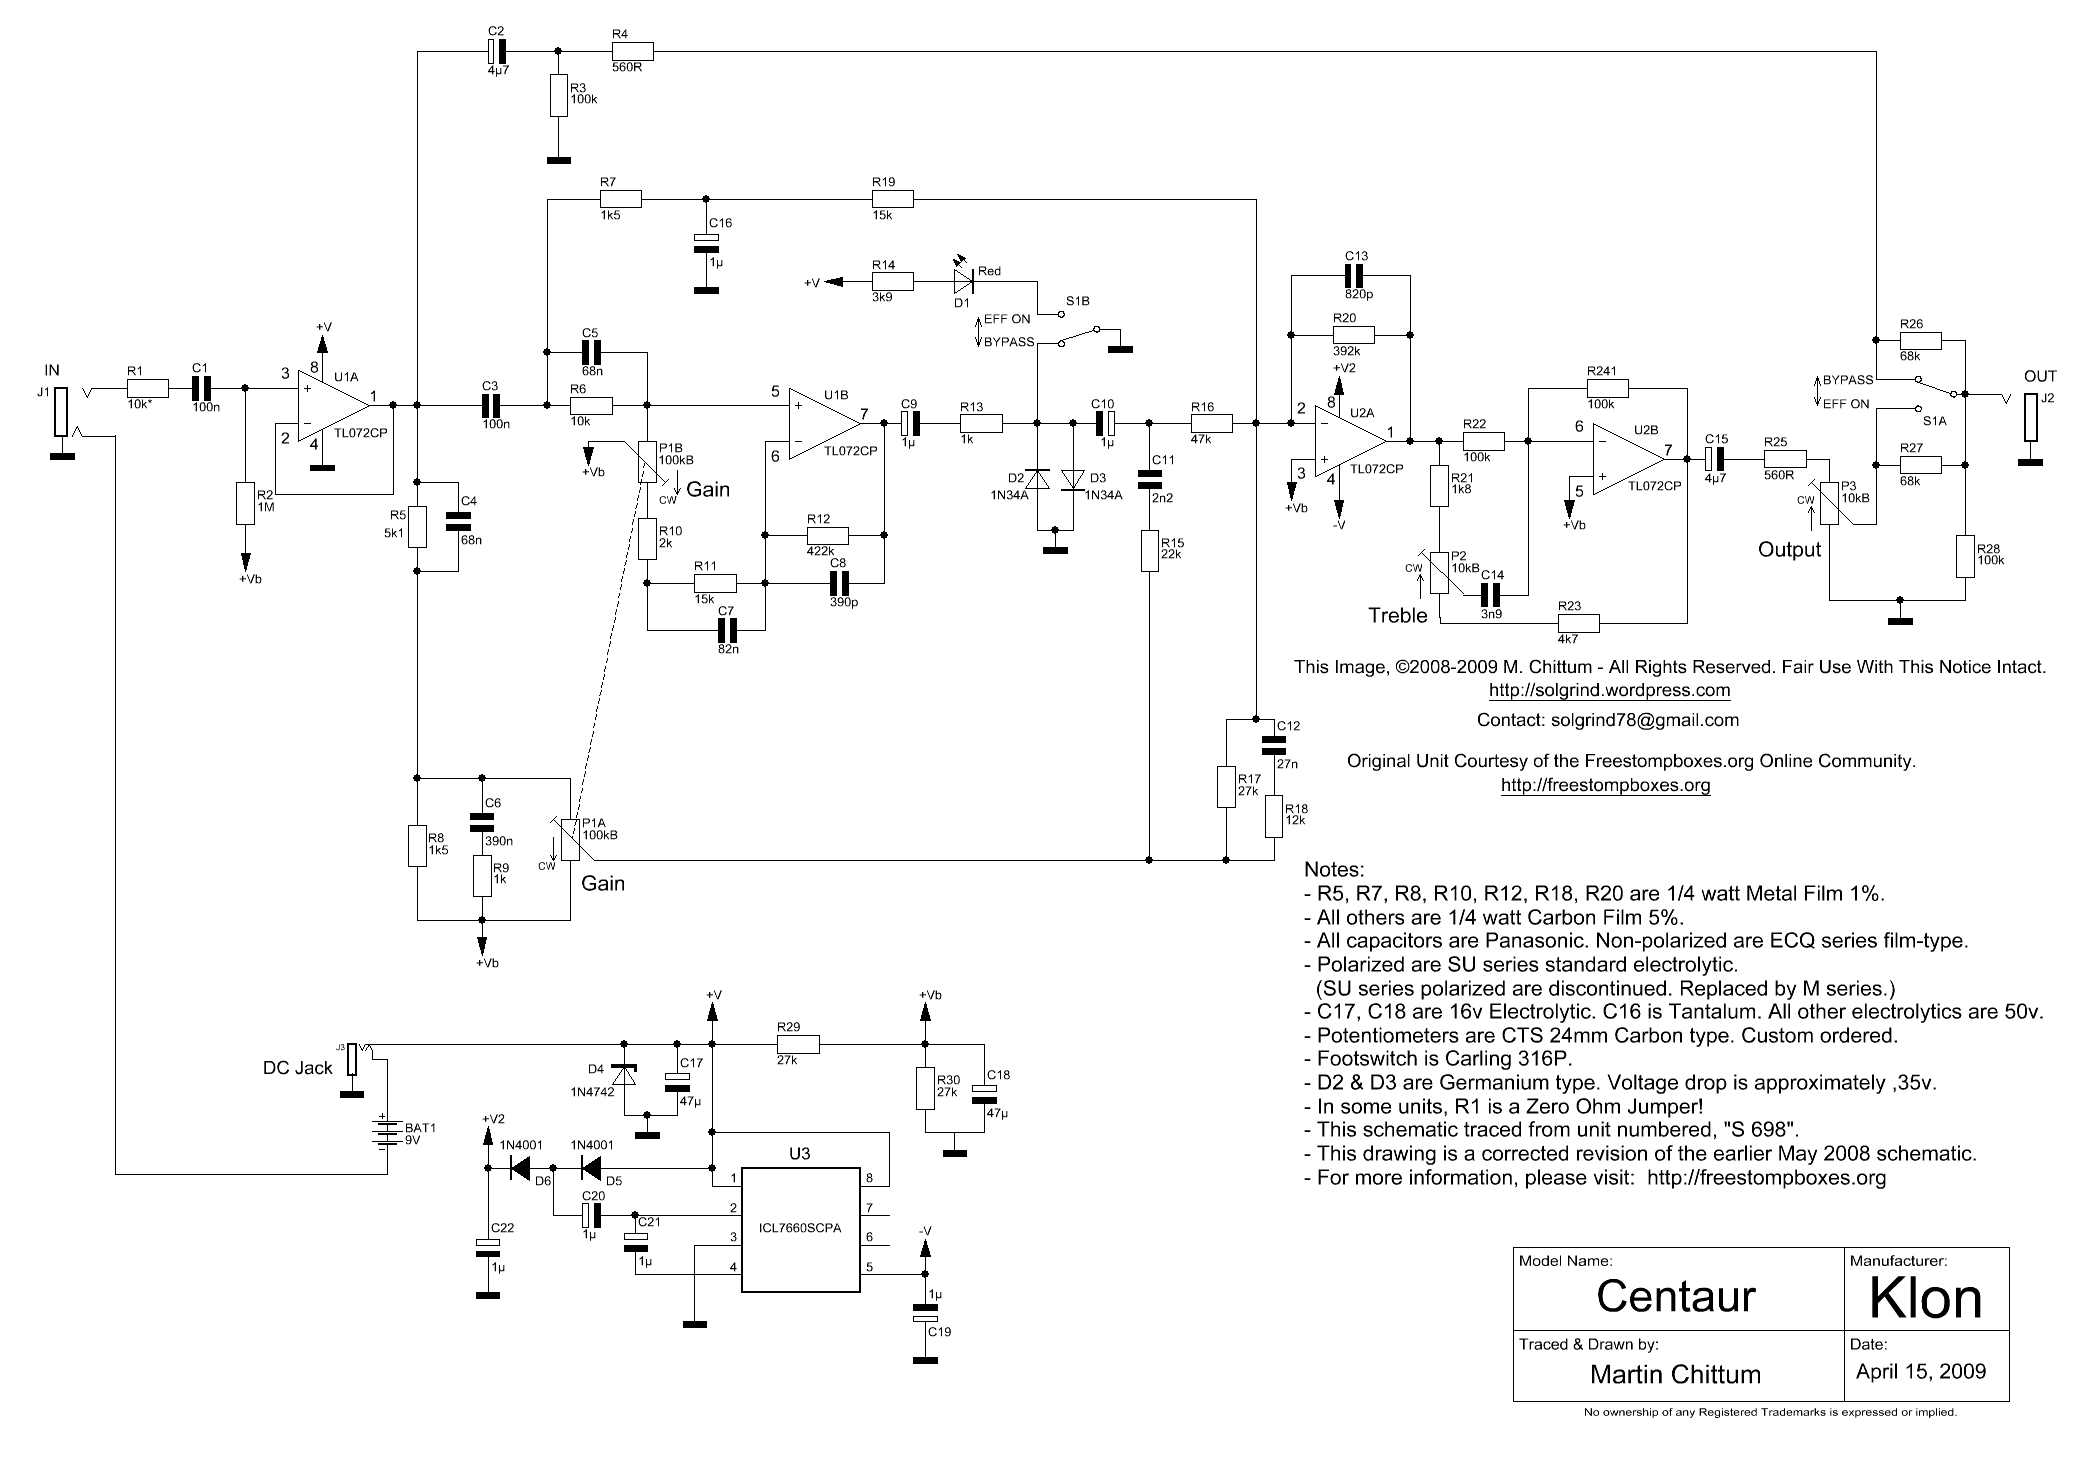 klon-centaur-schematic Xotic Bb Preamp Schematic on jfet guitar, ibanez acoustic, microphone tube, low-voltage tube, apt holman, bass guitar, rca phono,